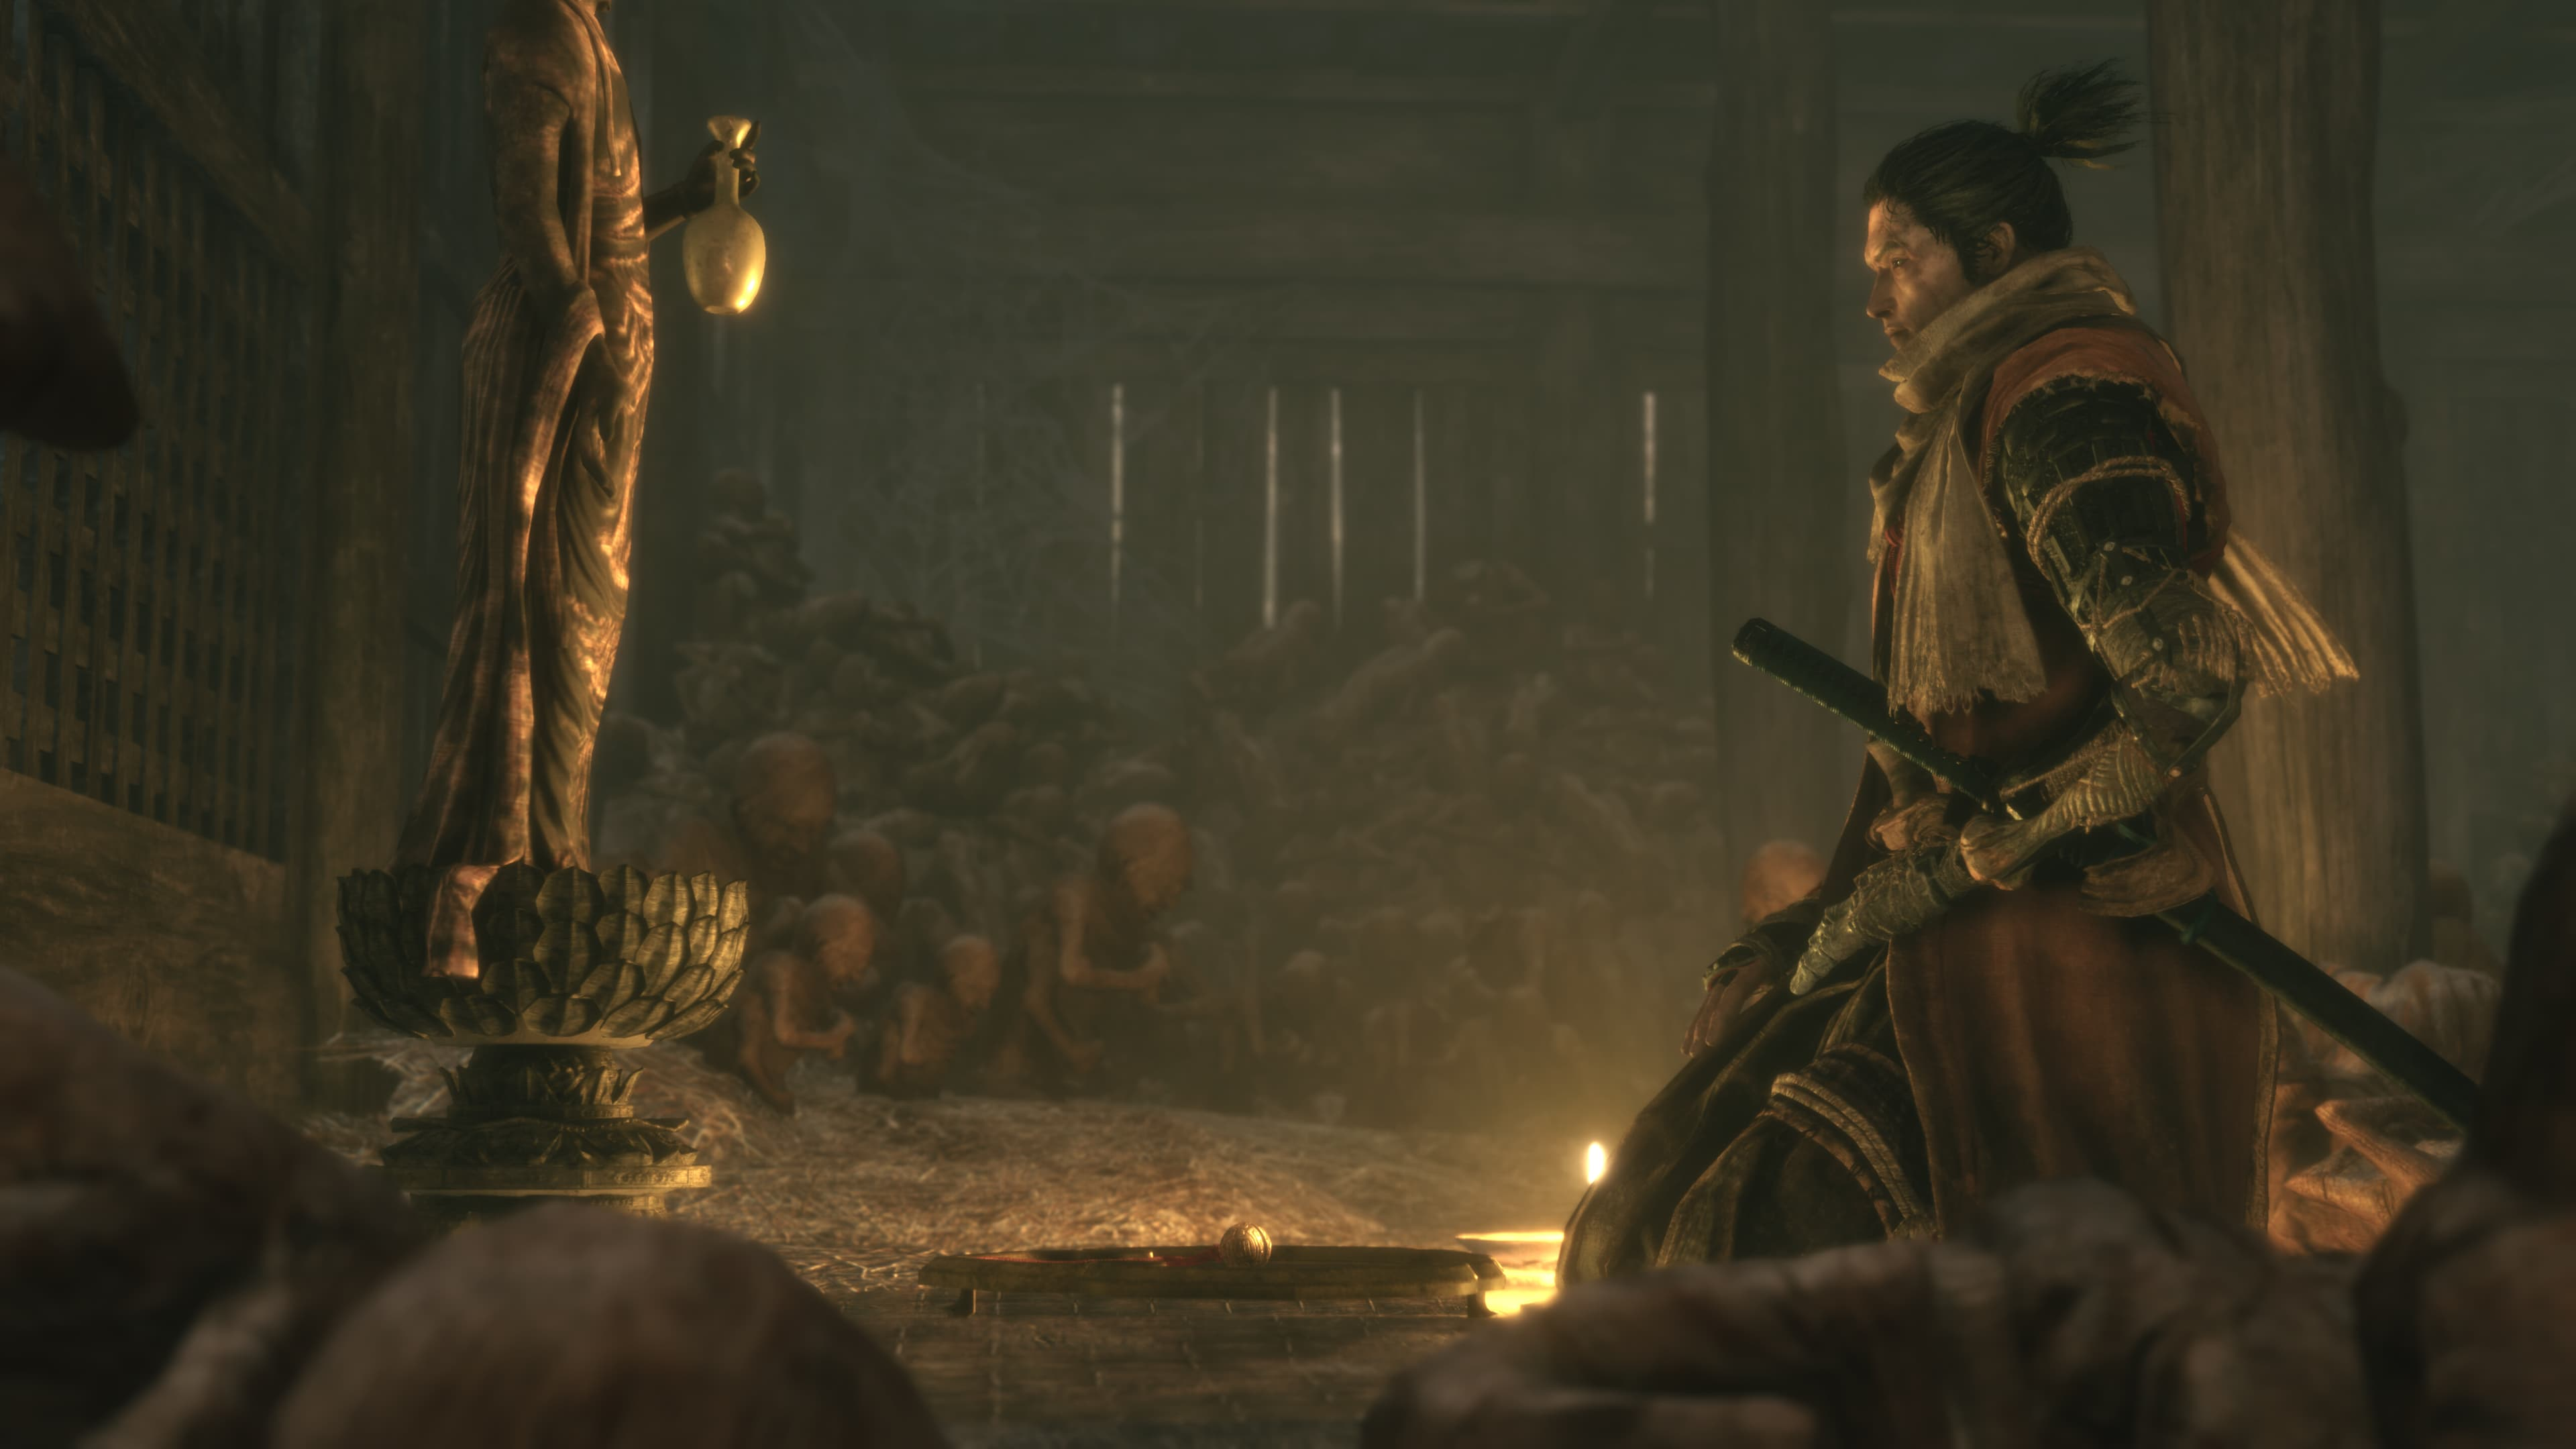 Análisis de Sekiro: Shadows Die Twice - Xbox One 2